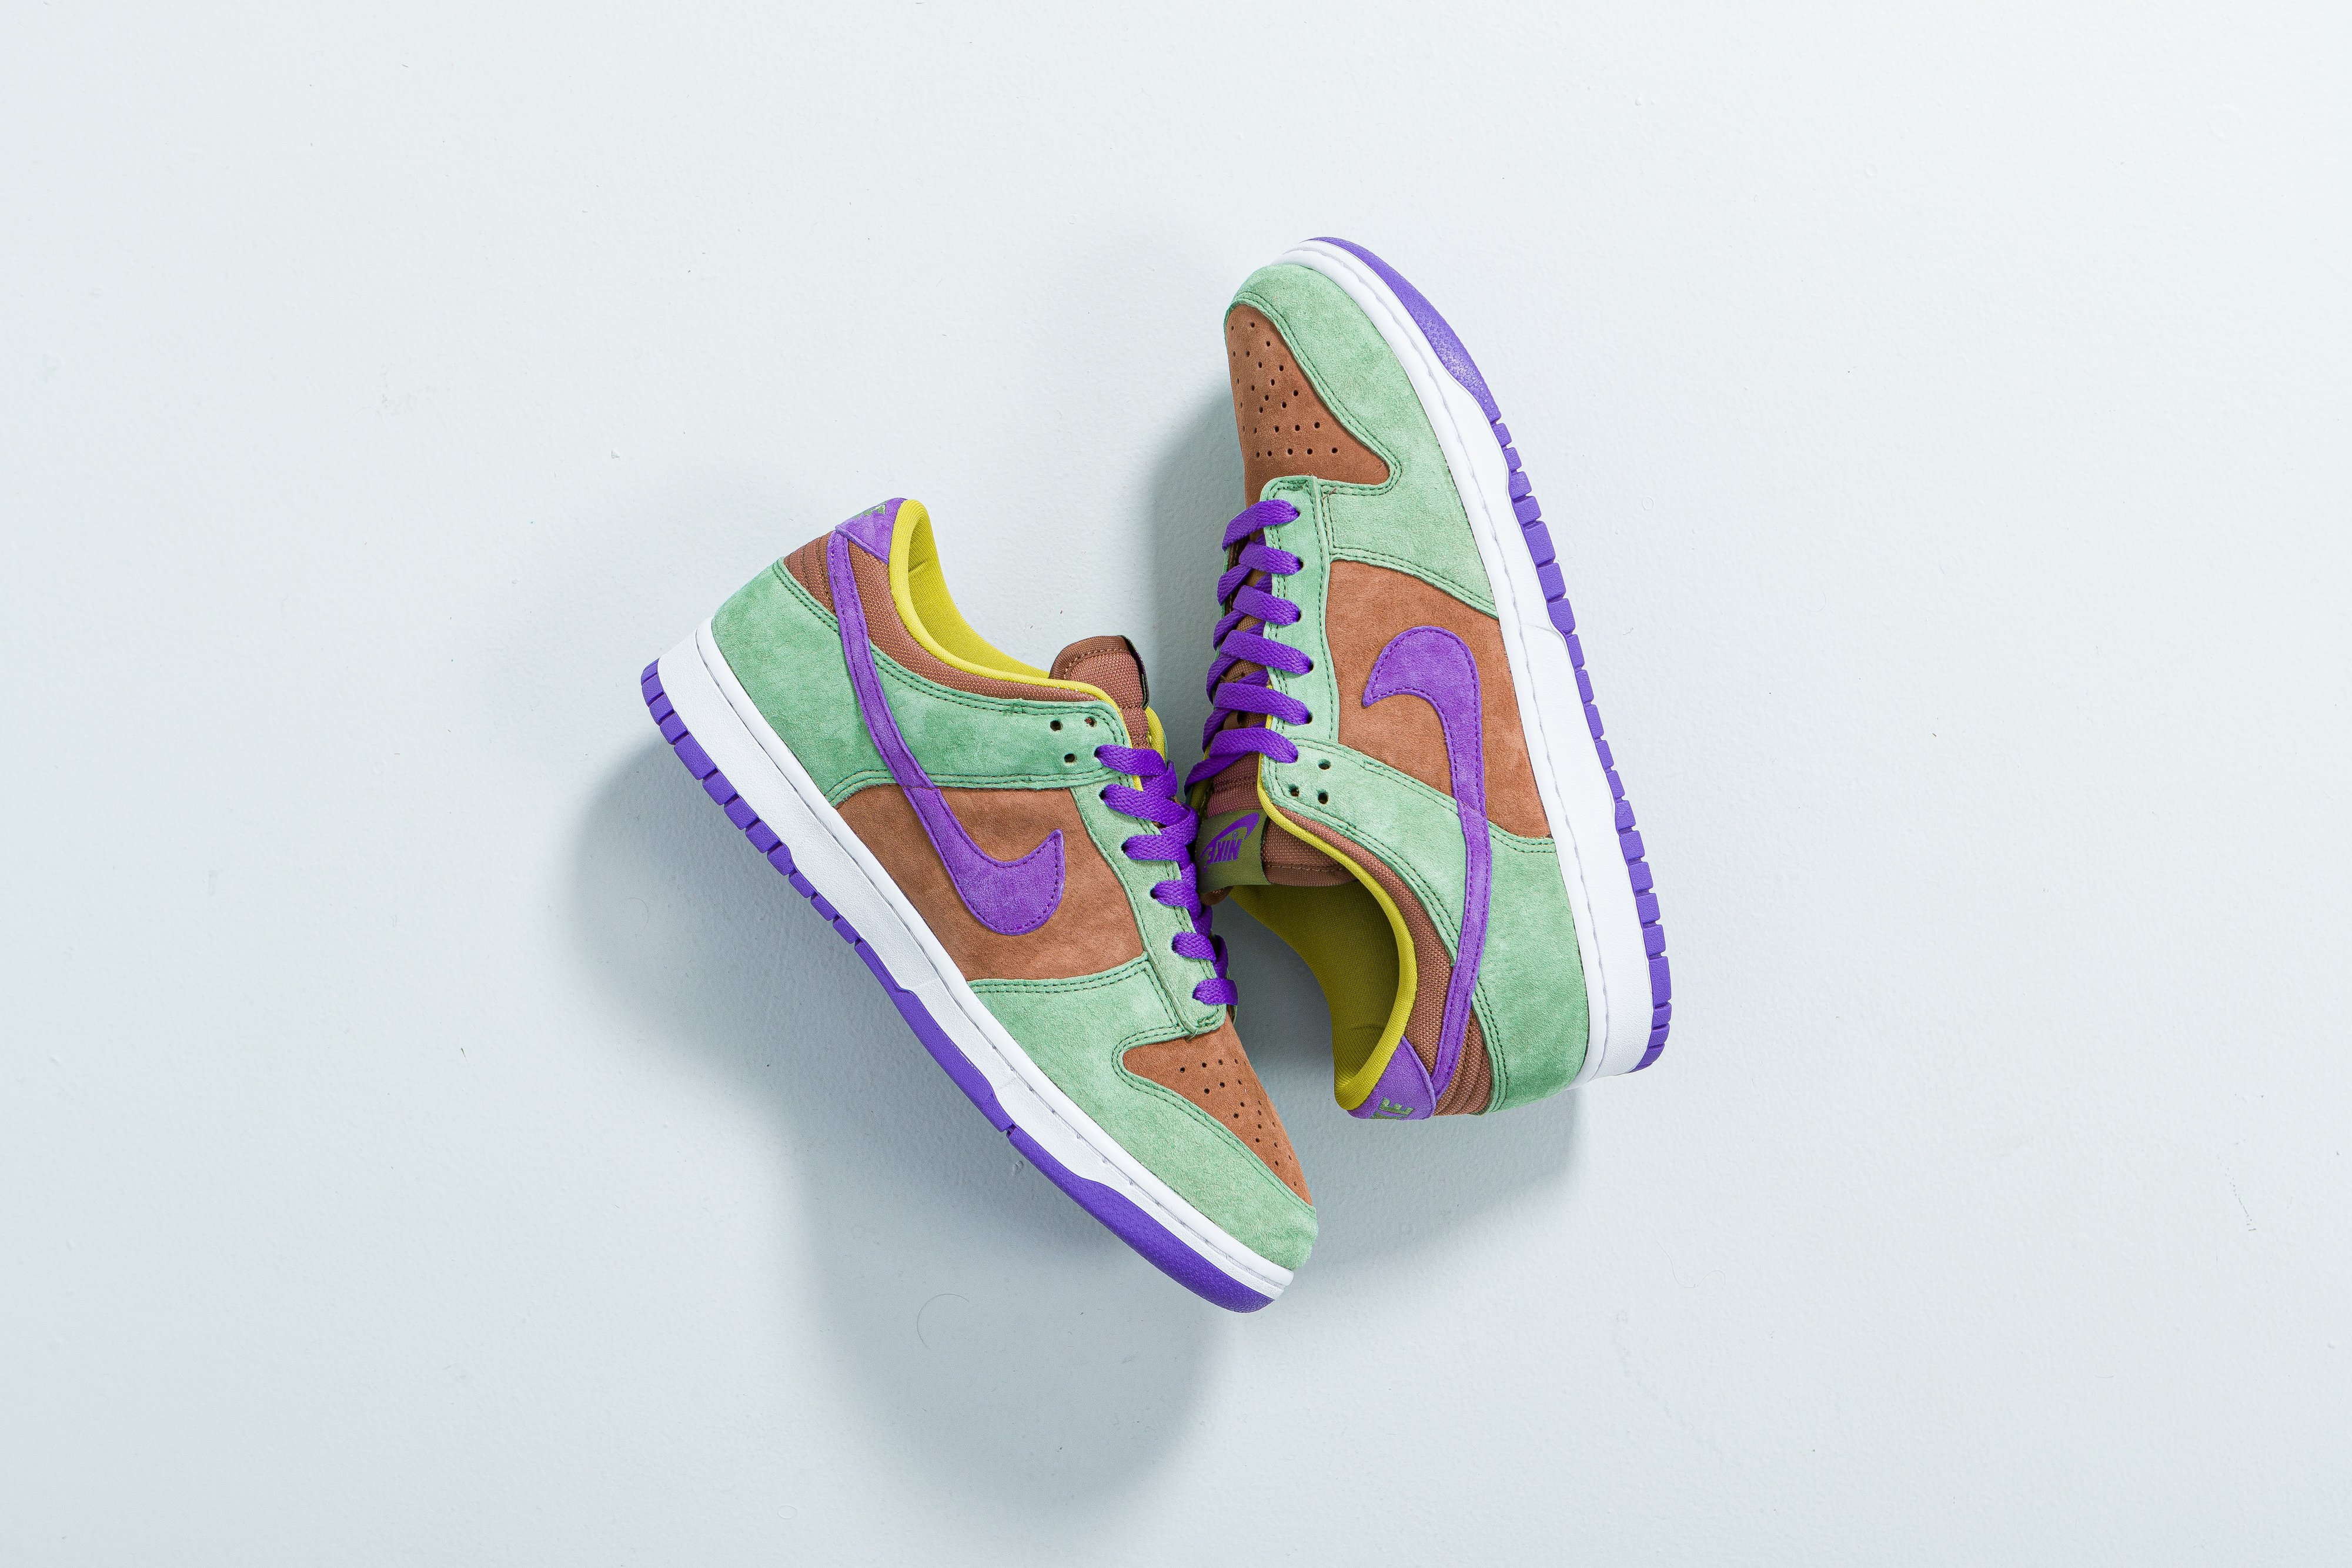 Nike - Dunk Low SP - Veneer/Deep Purple-Autumn Green - Up There